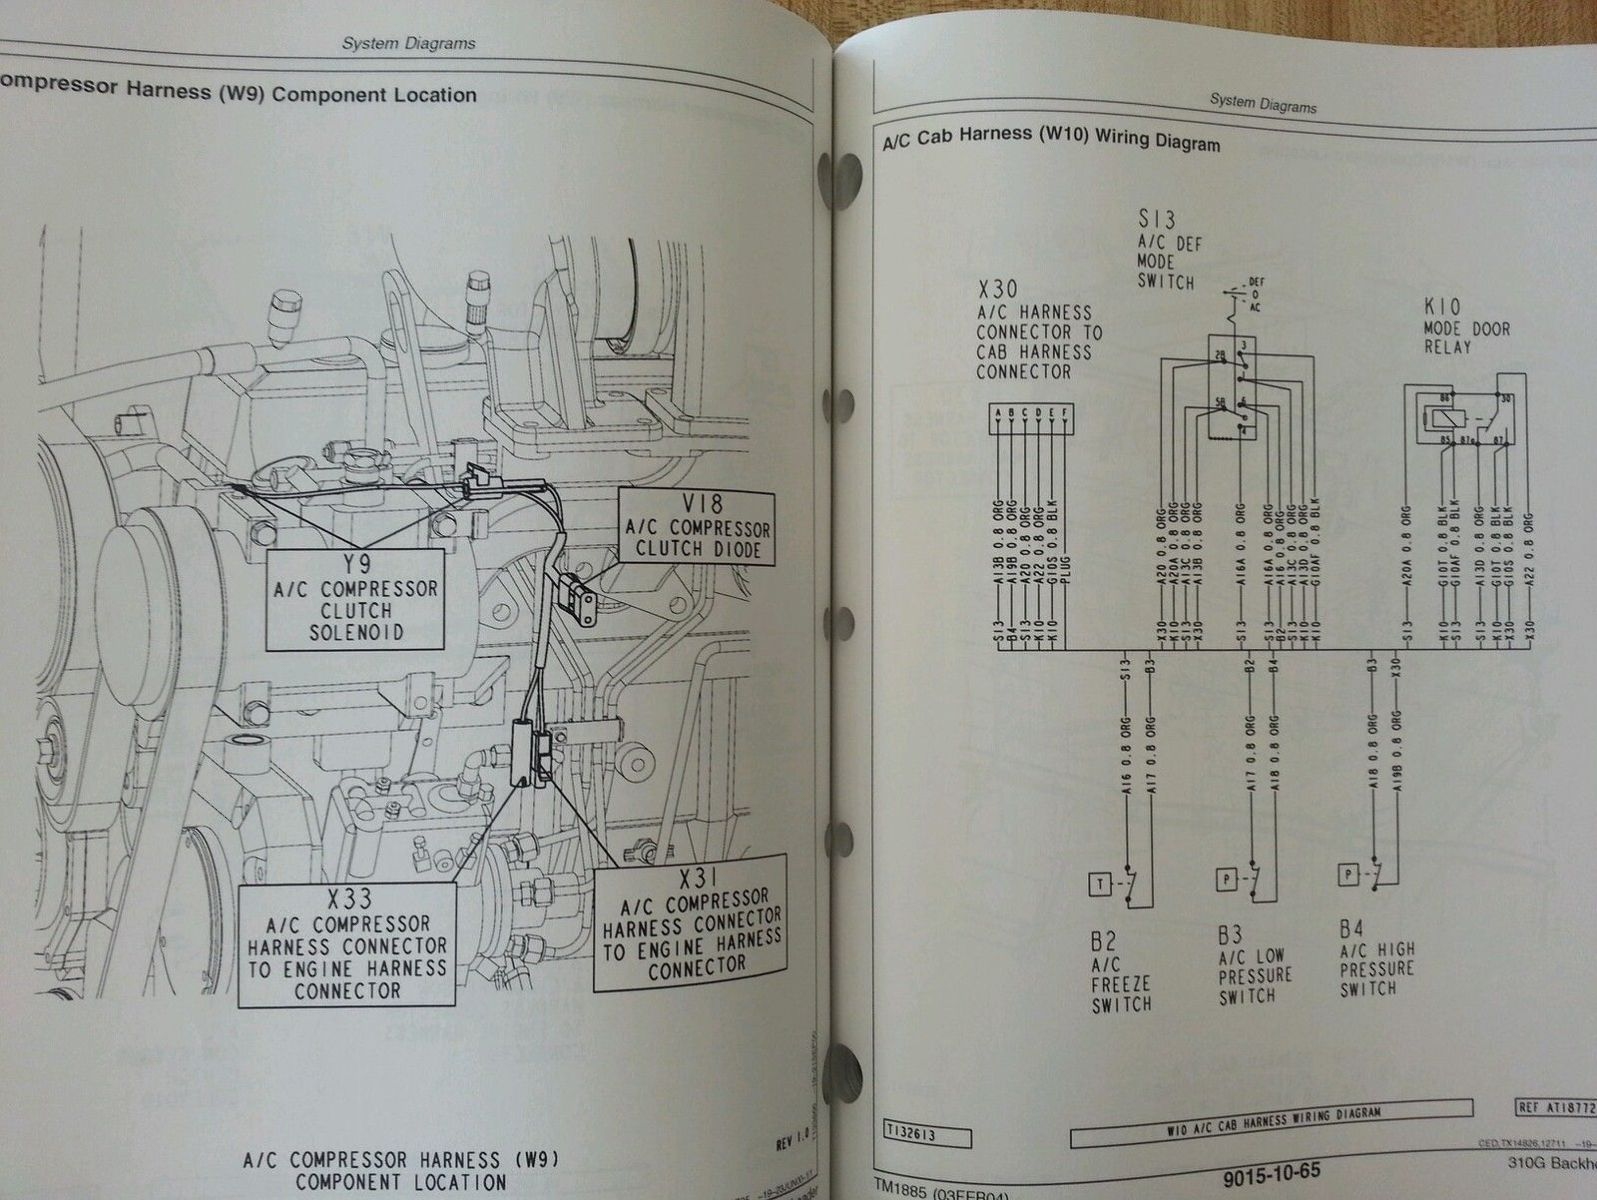 john deere 310g backhoe wiring diagram john wiring diagrams john deere jd 310g backhoe loader service technical operation test